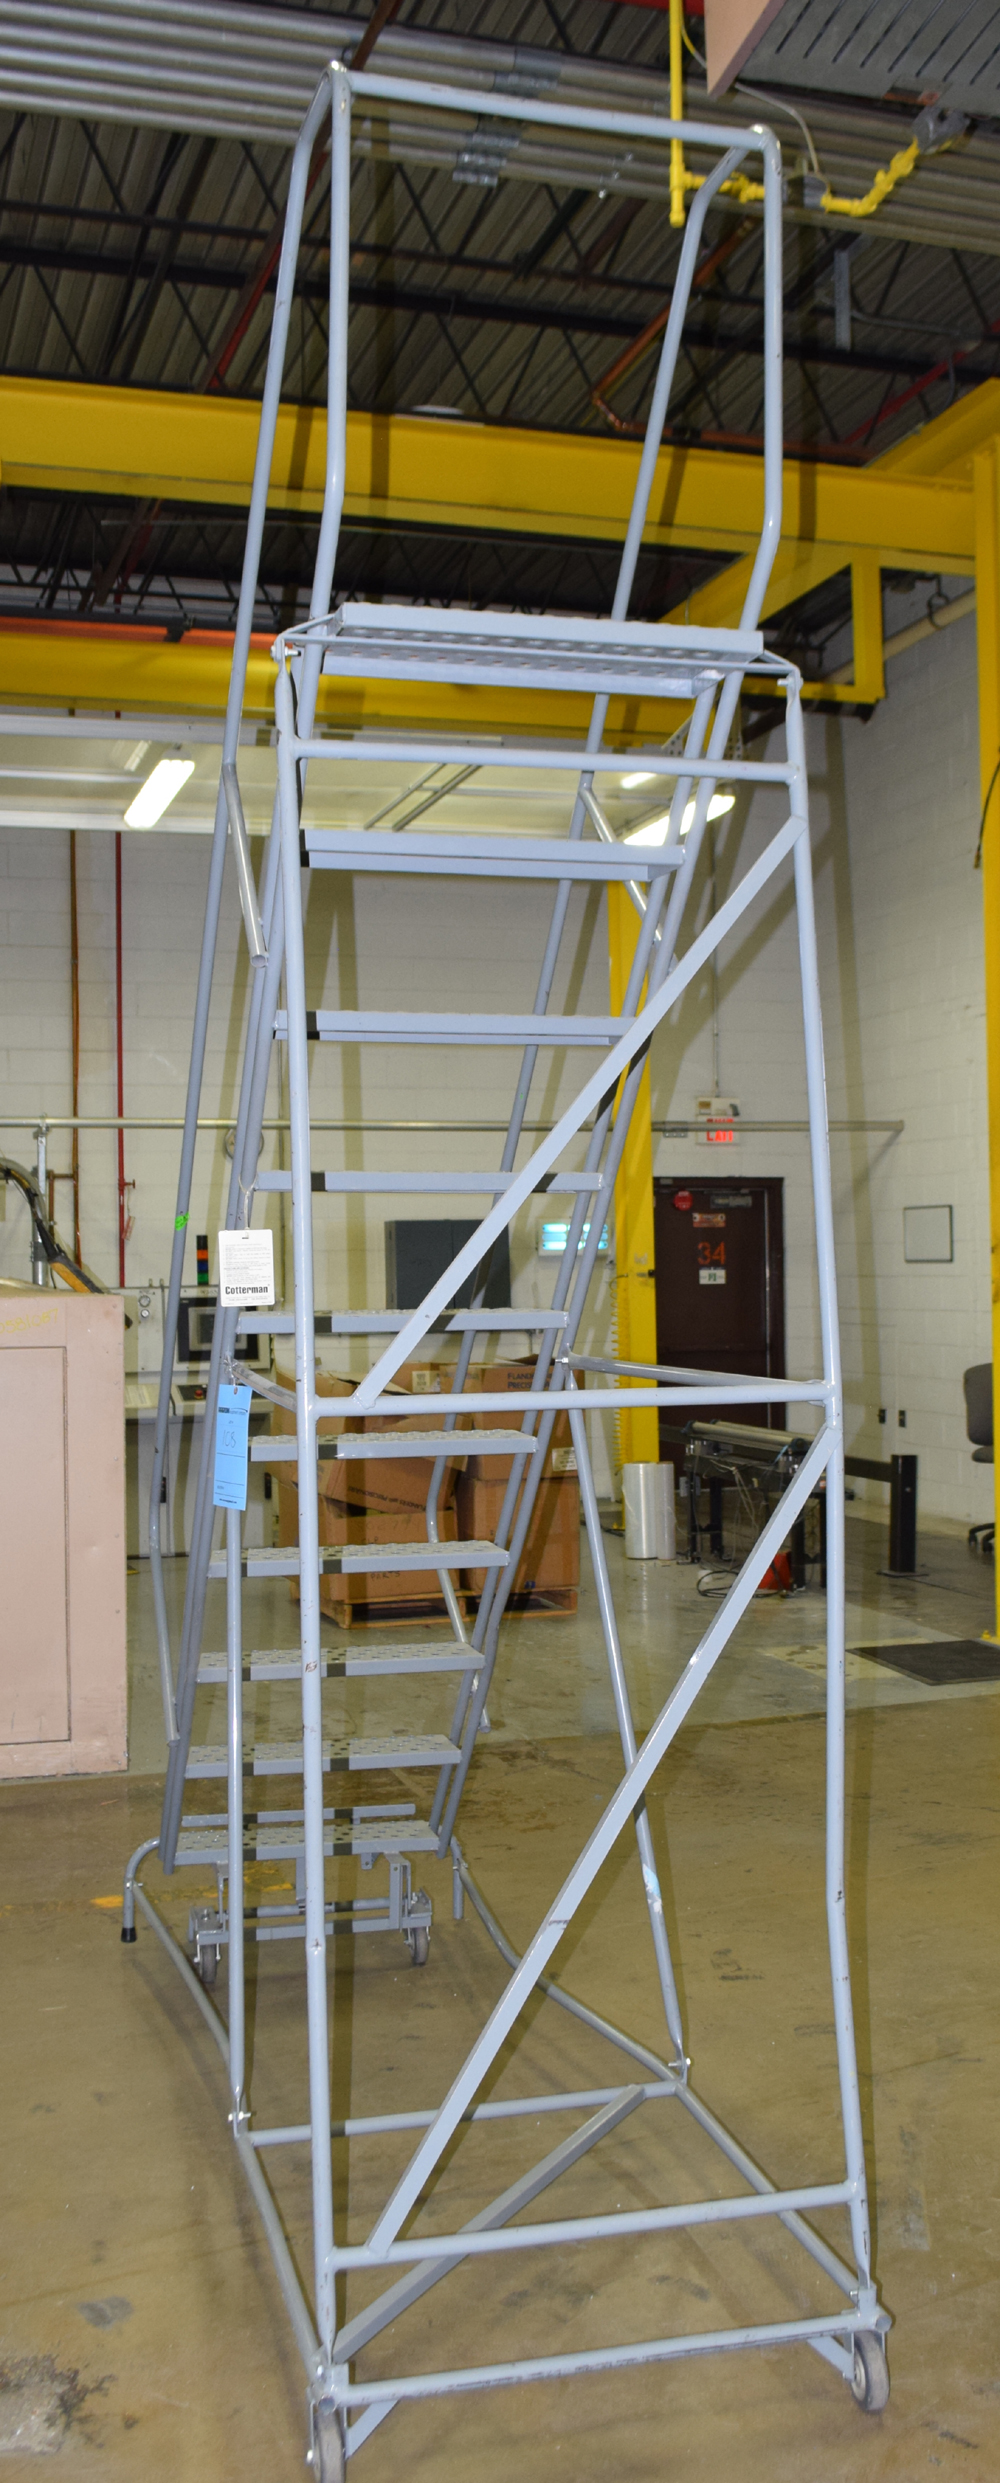 Rolling Ladder - Image 3 of 4